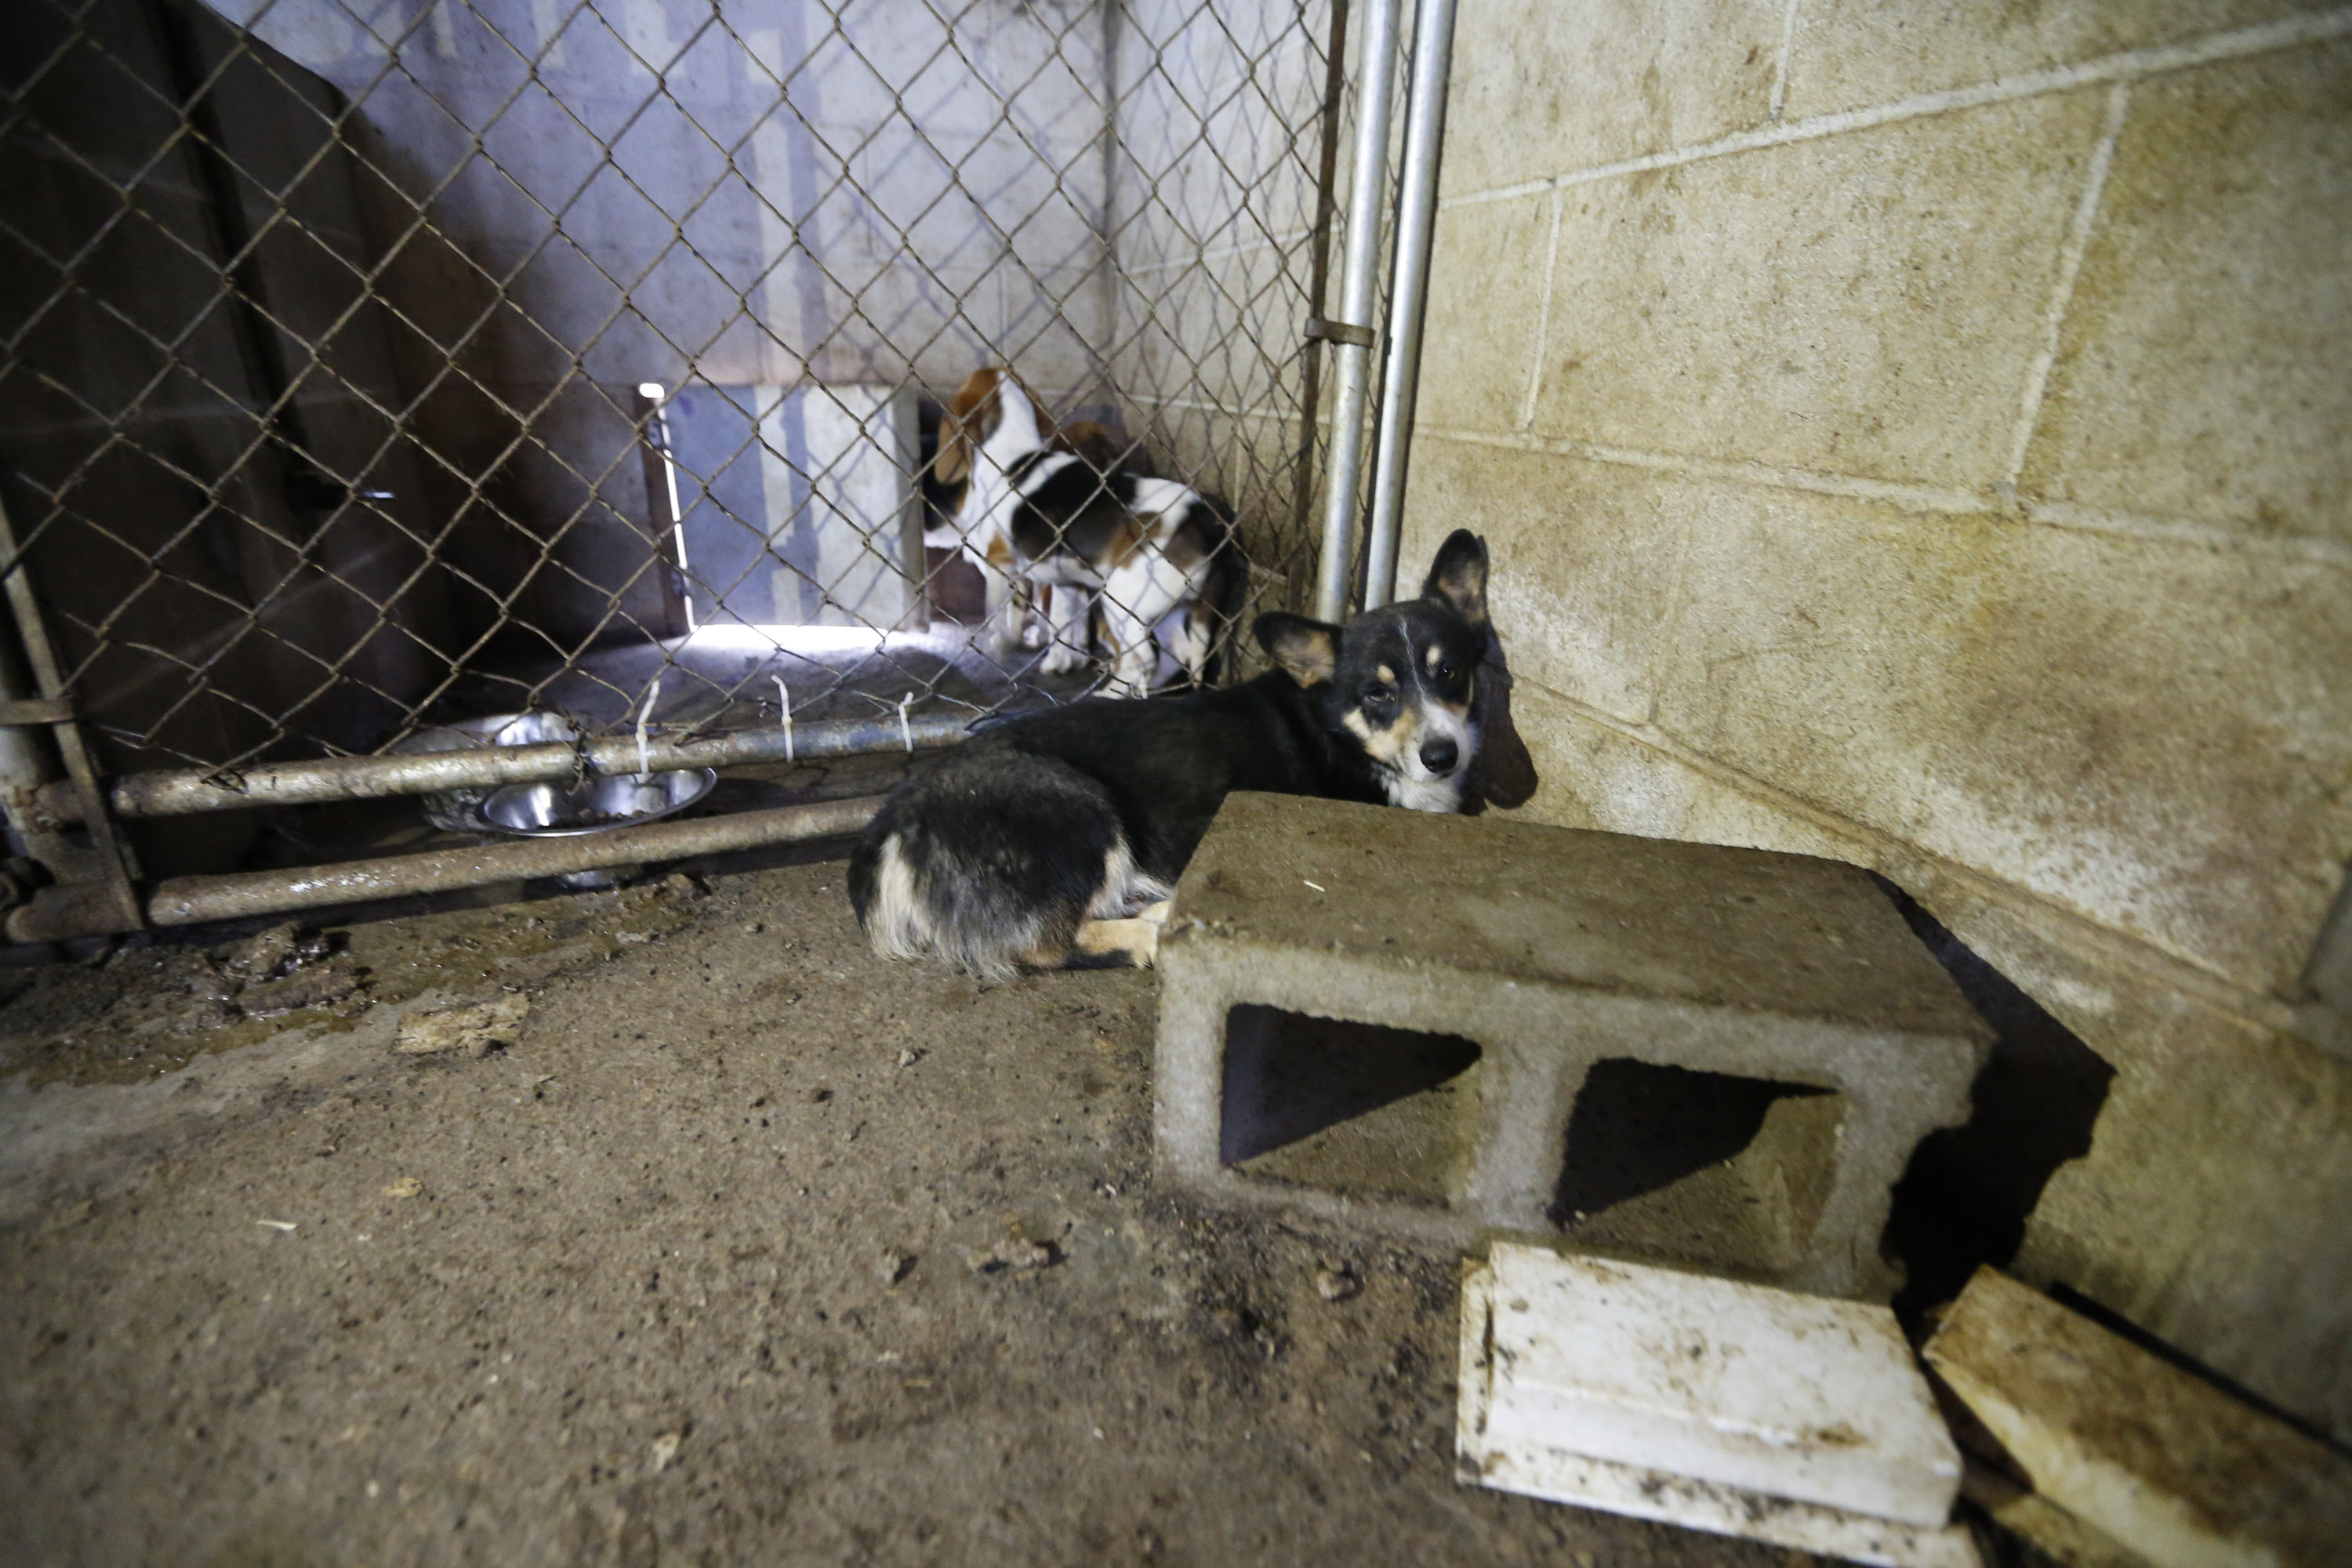 A Corgi, front, and a Beagle in a cluttered barn during an animal rescue, Thursday, March 3, 2016, in Madison Co., Arkansas. (Brandon Wade/AP Images for The Humane Society of the United States)